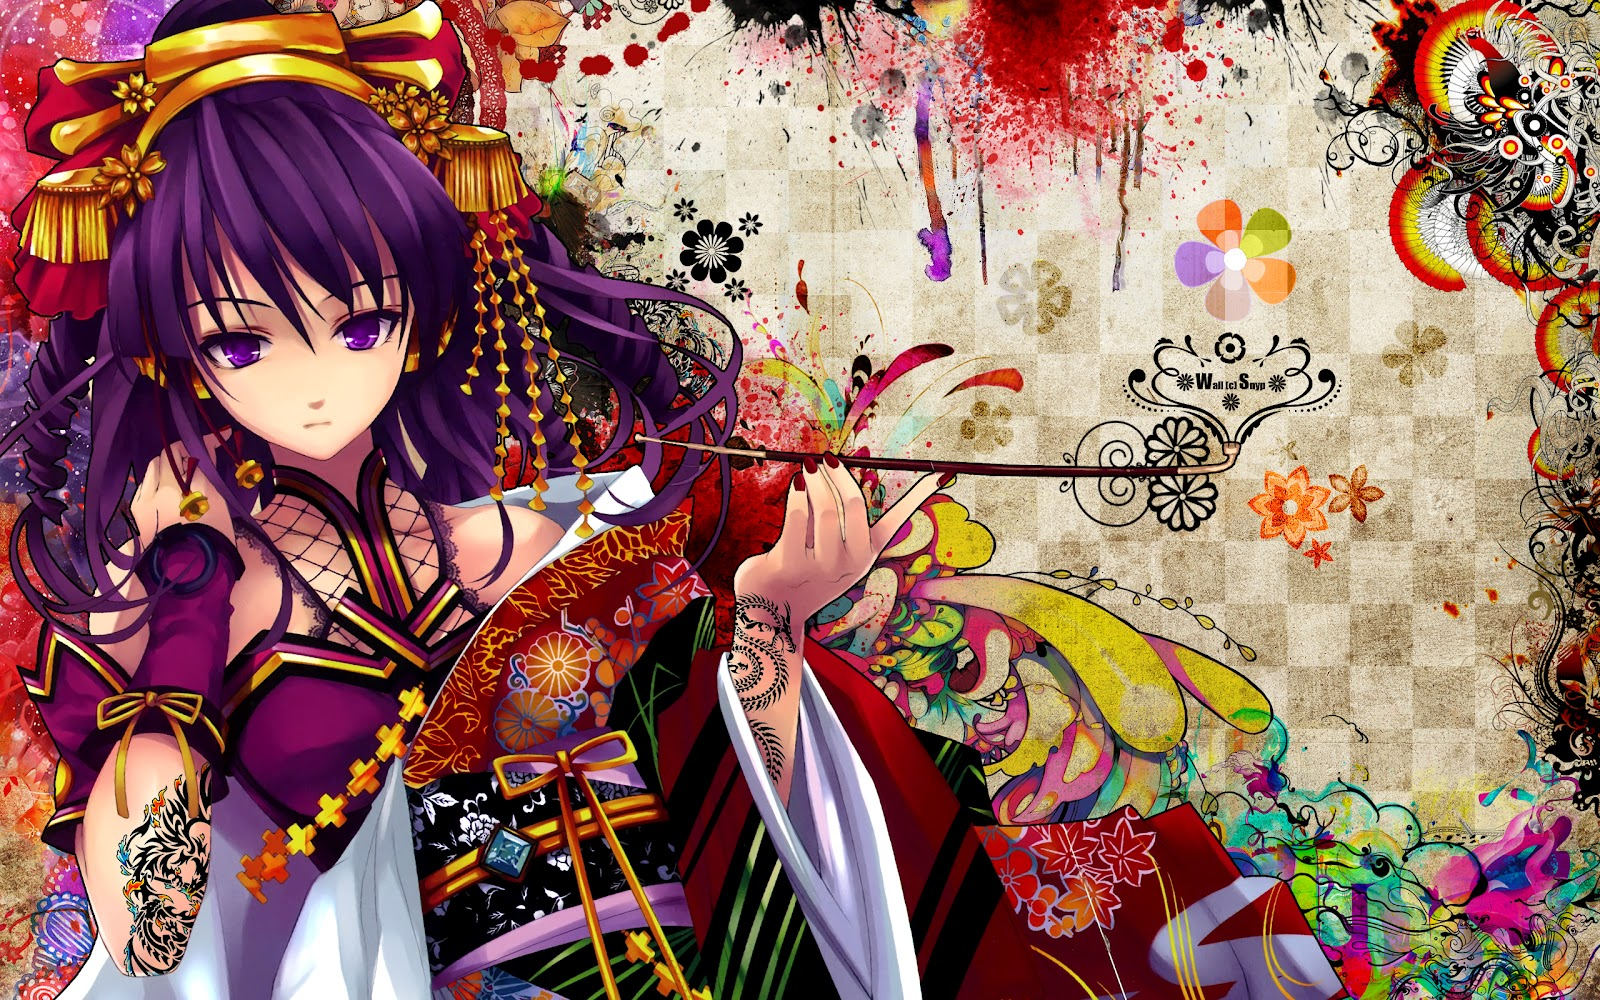 geisha hd wallpapers geisha hd wallpapers geisha hd wallpapers geisha 1600x1000